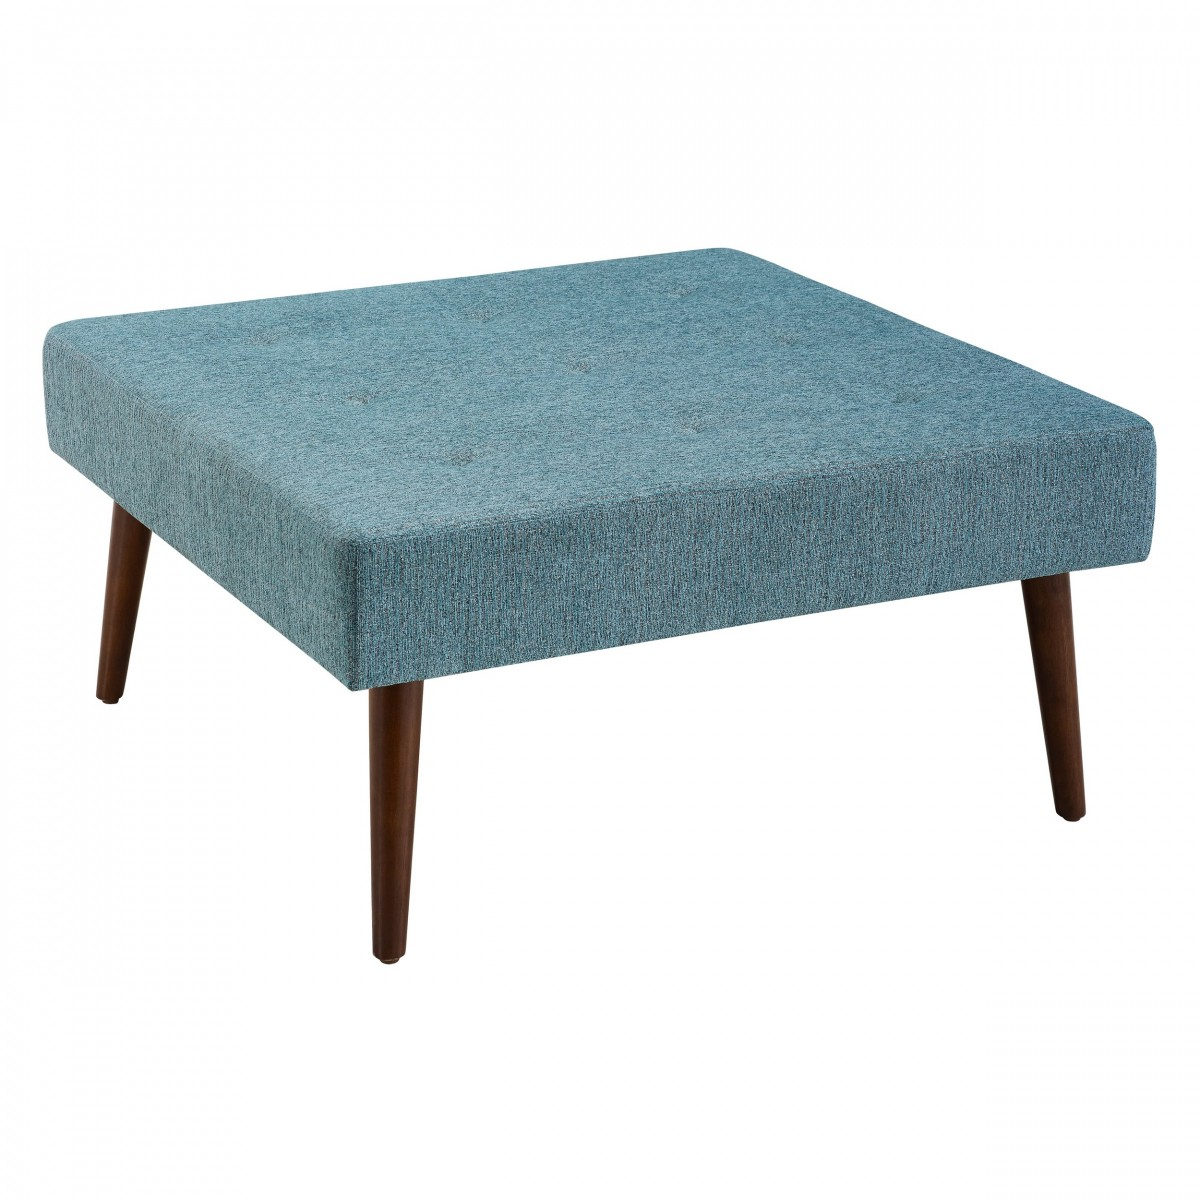 Home Decor Products Inc: Linon Home Decor Products Inc. Charlotte Upholstered